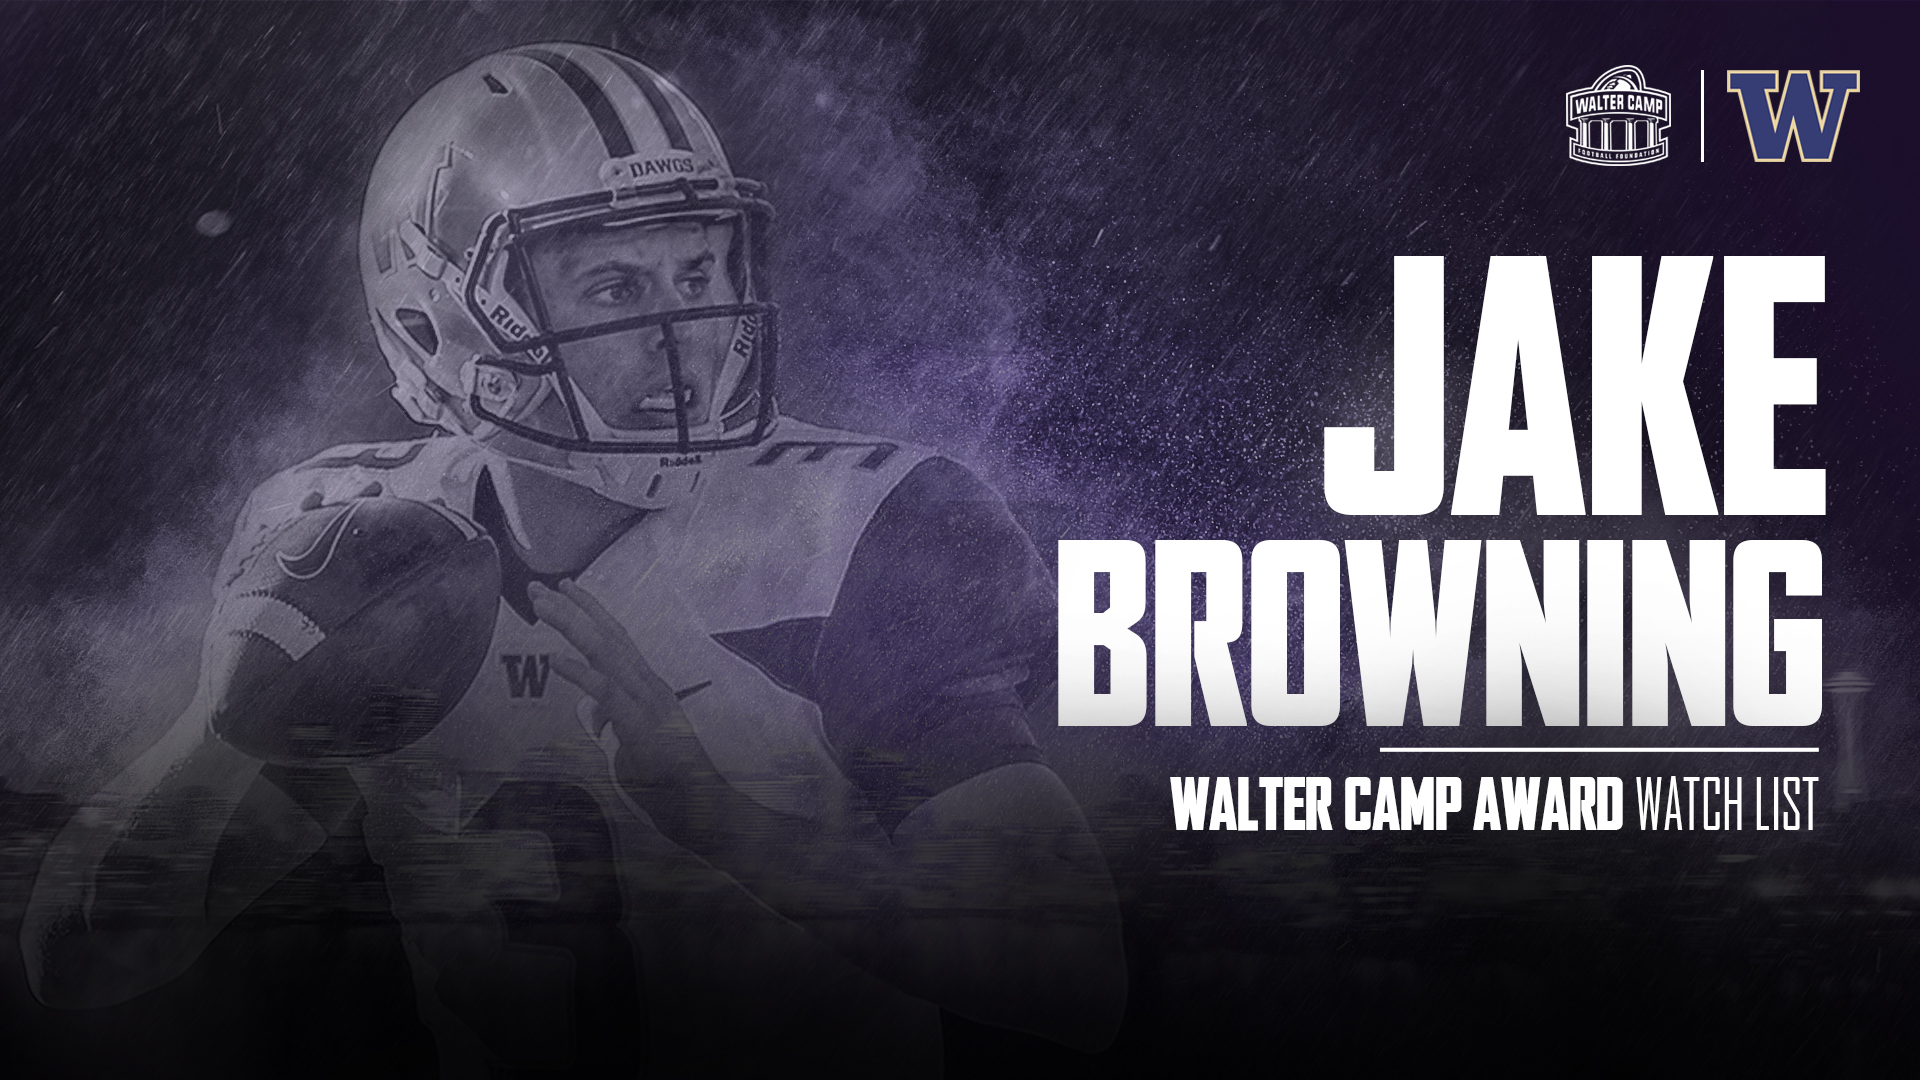 Fb_camp_watch_beowning_1920x1080